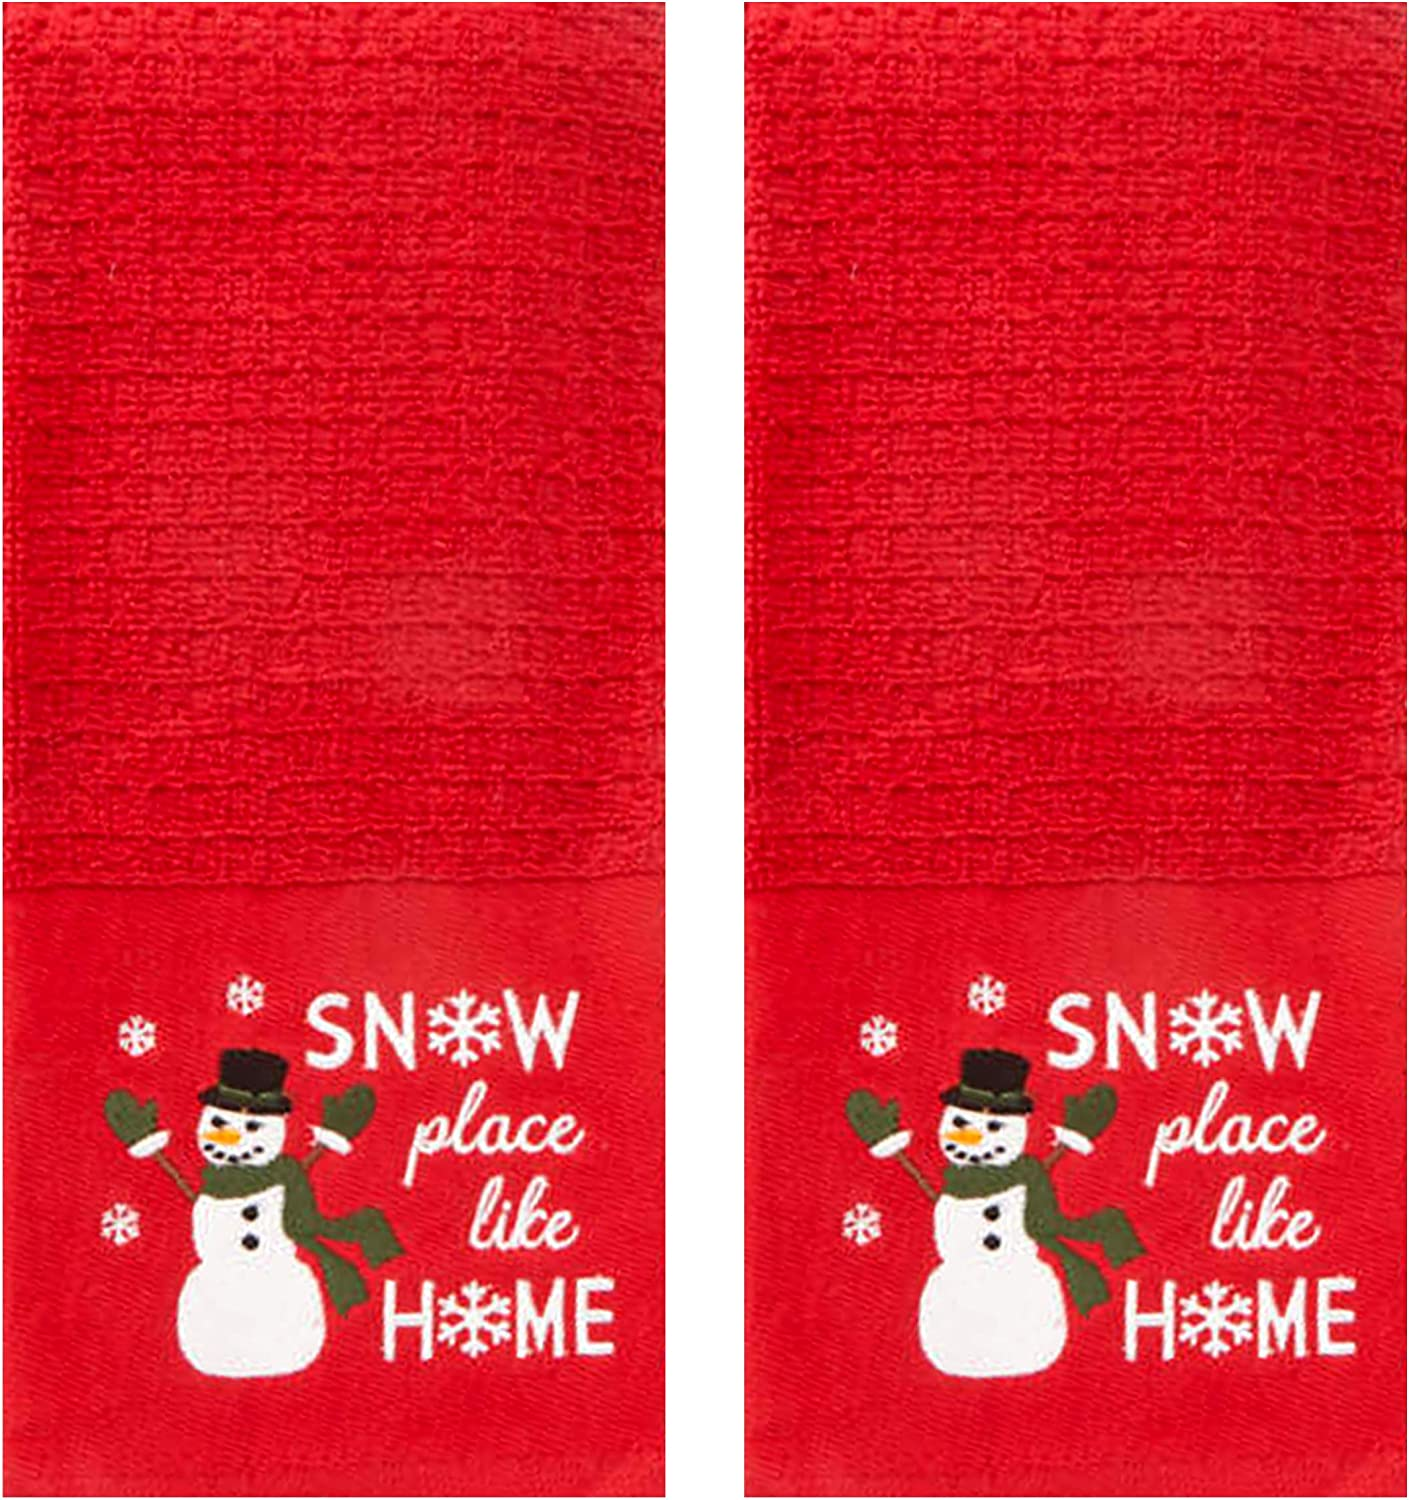 Winter Wonder Lane Kitchen Towel Set of 2, Snowman Snow Place Like Home, Holiday Cottage Collection, Embroidered Winter Design on Soft Cotton Waffle Style Towels, 16 x 26 Inches